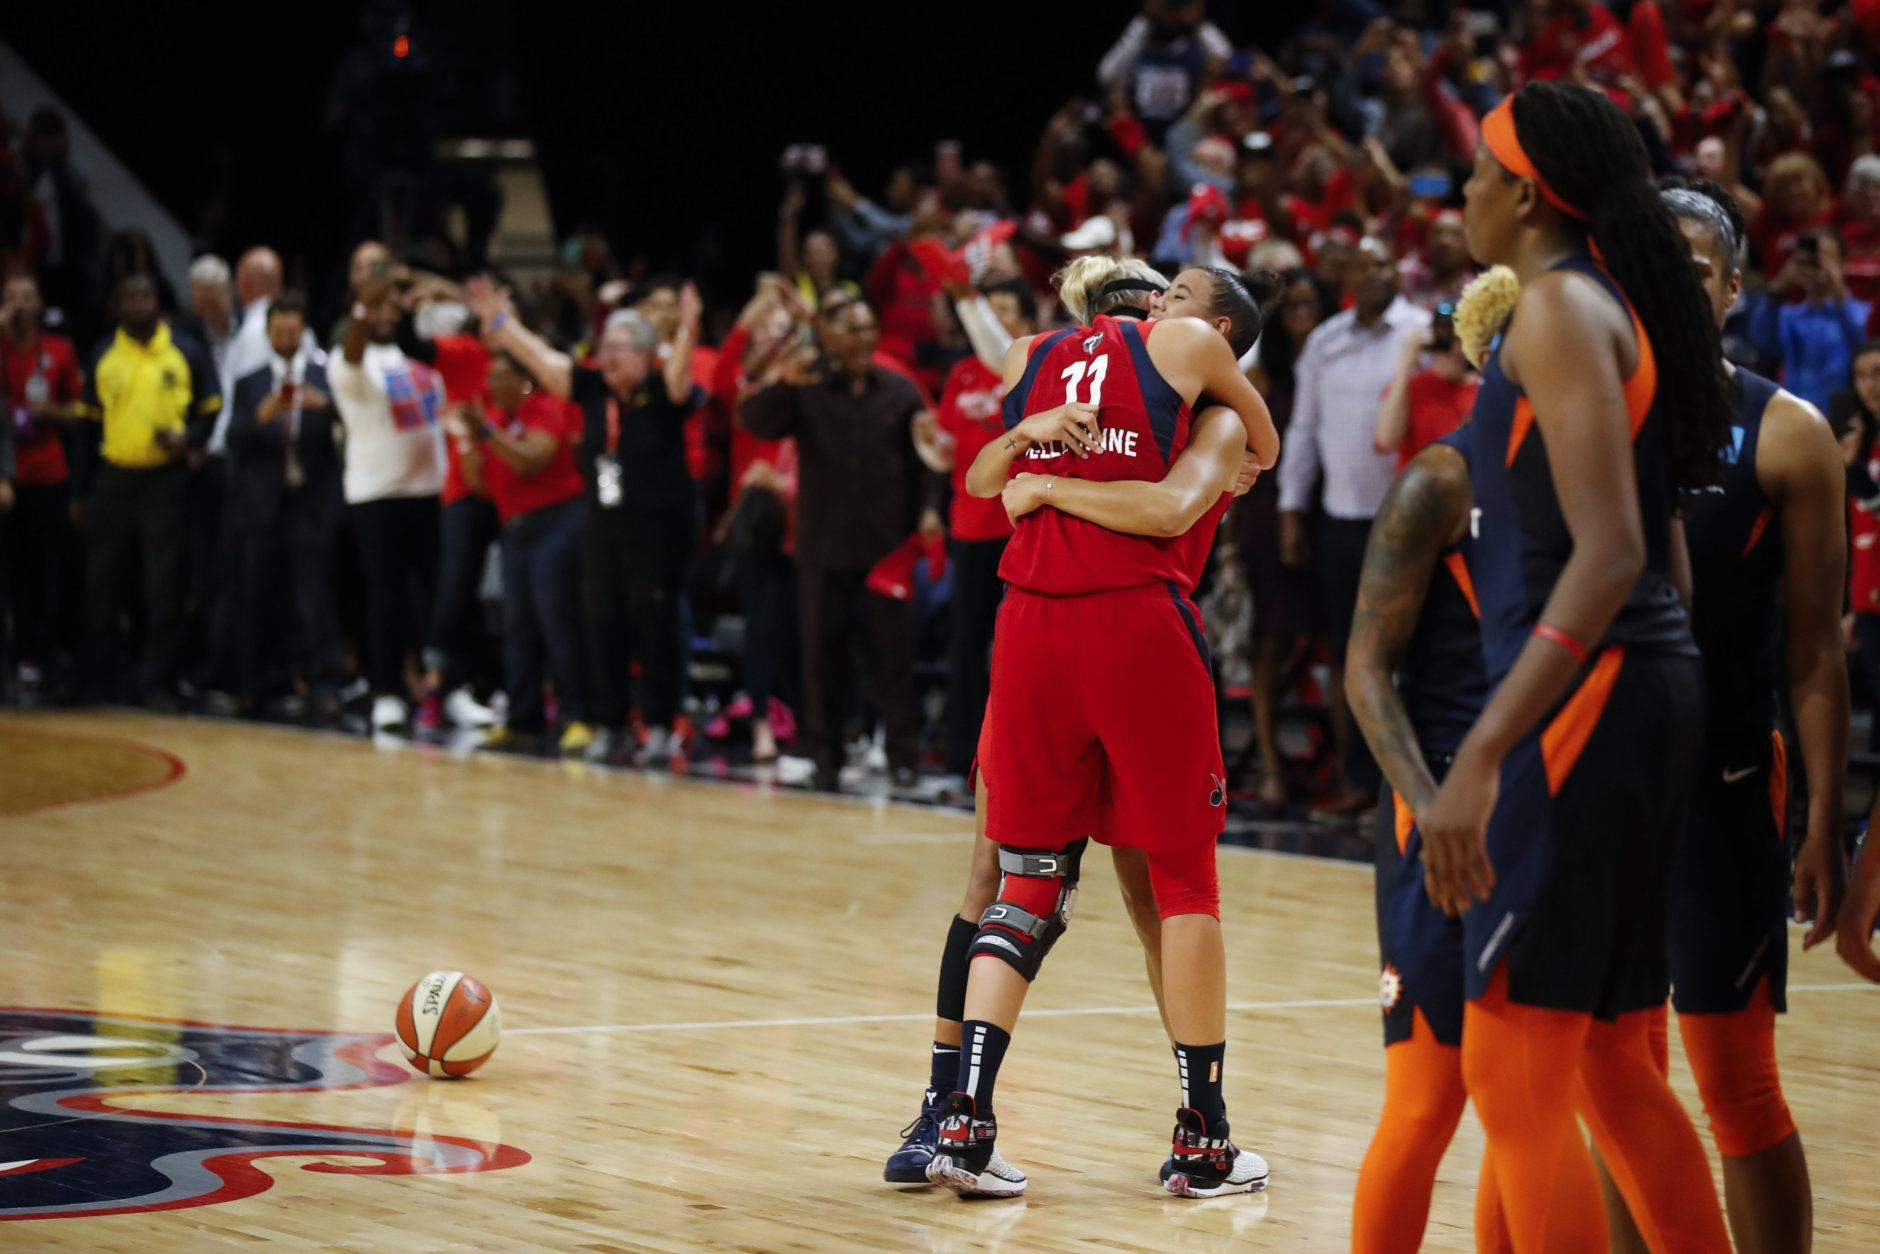 Washington Mystics forward Elena Delle Donne (11) and guard Natasha Cloud hug as time expires in the second half of Game 5 of basketball's WNBA Finals against the Connecticut Sun, Thursday, Oct. 10, 2019, in Washington. (AP Photo/Alex Brandon)